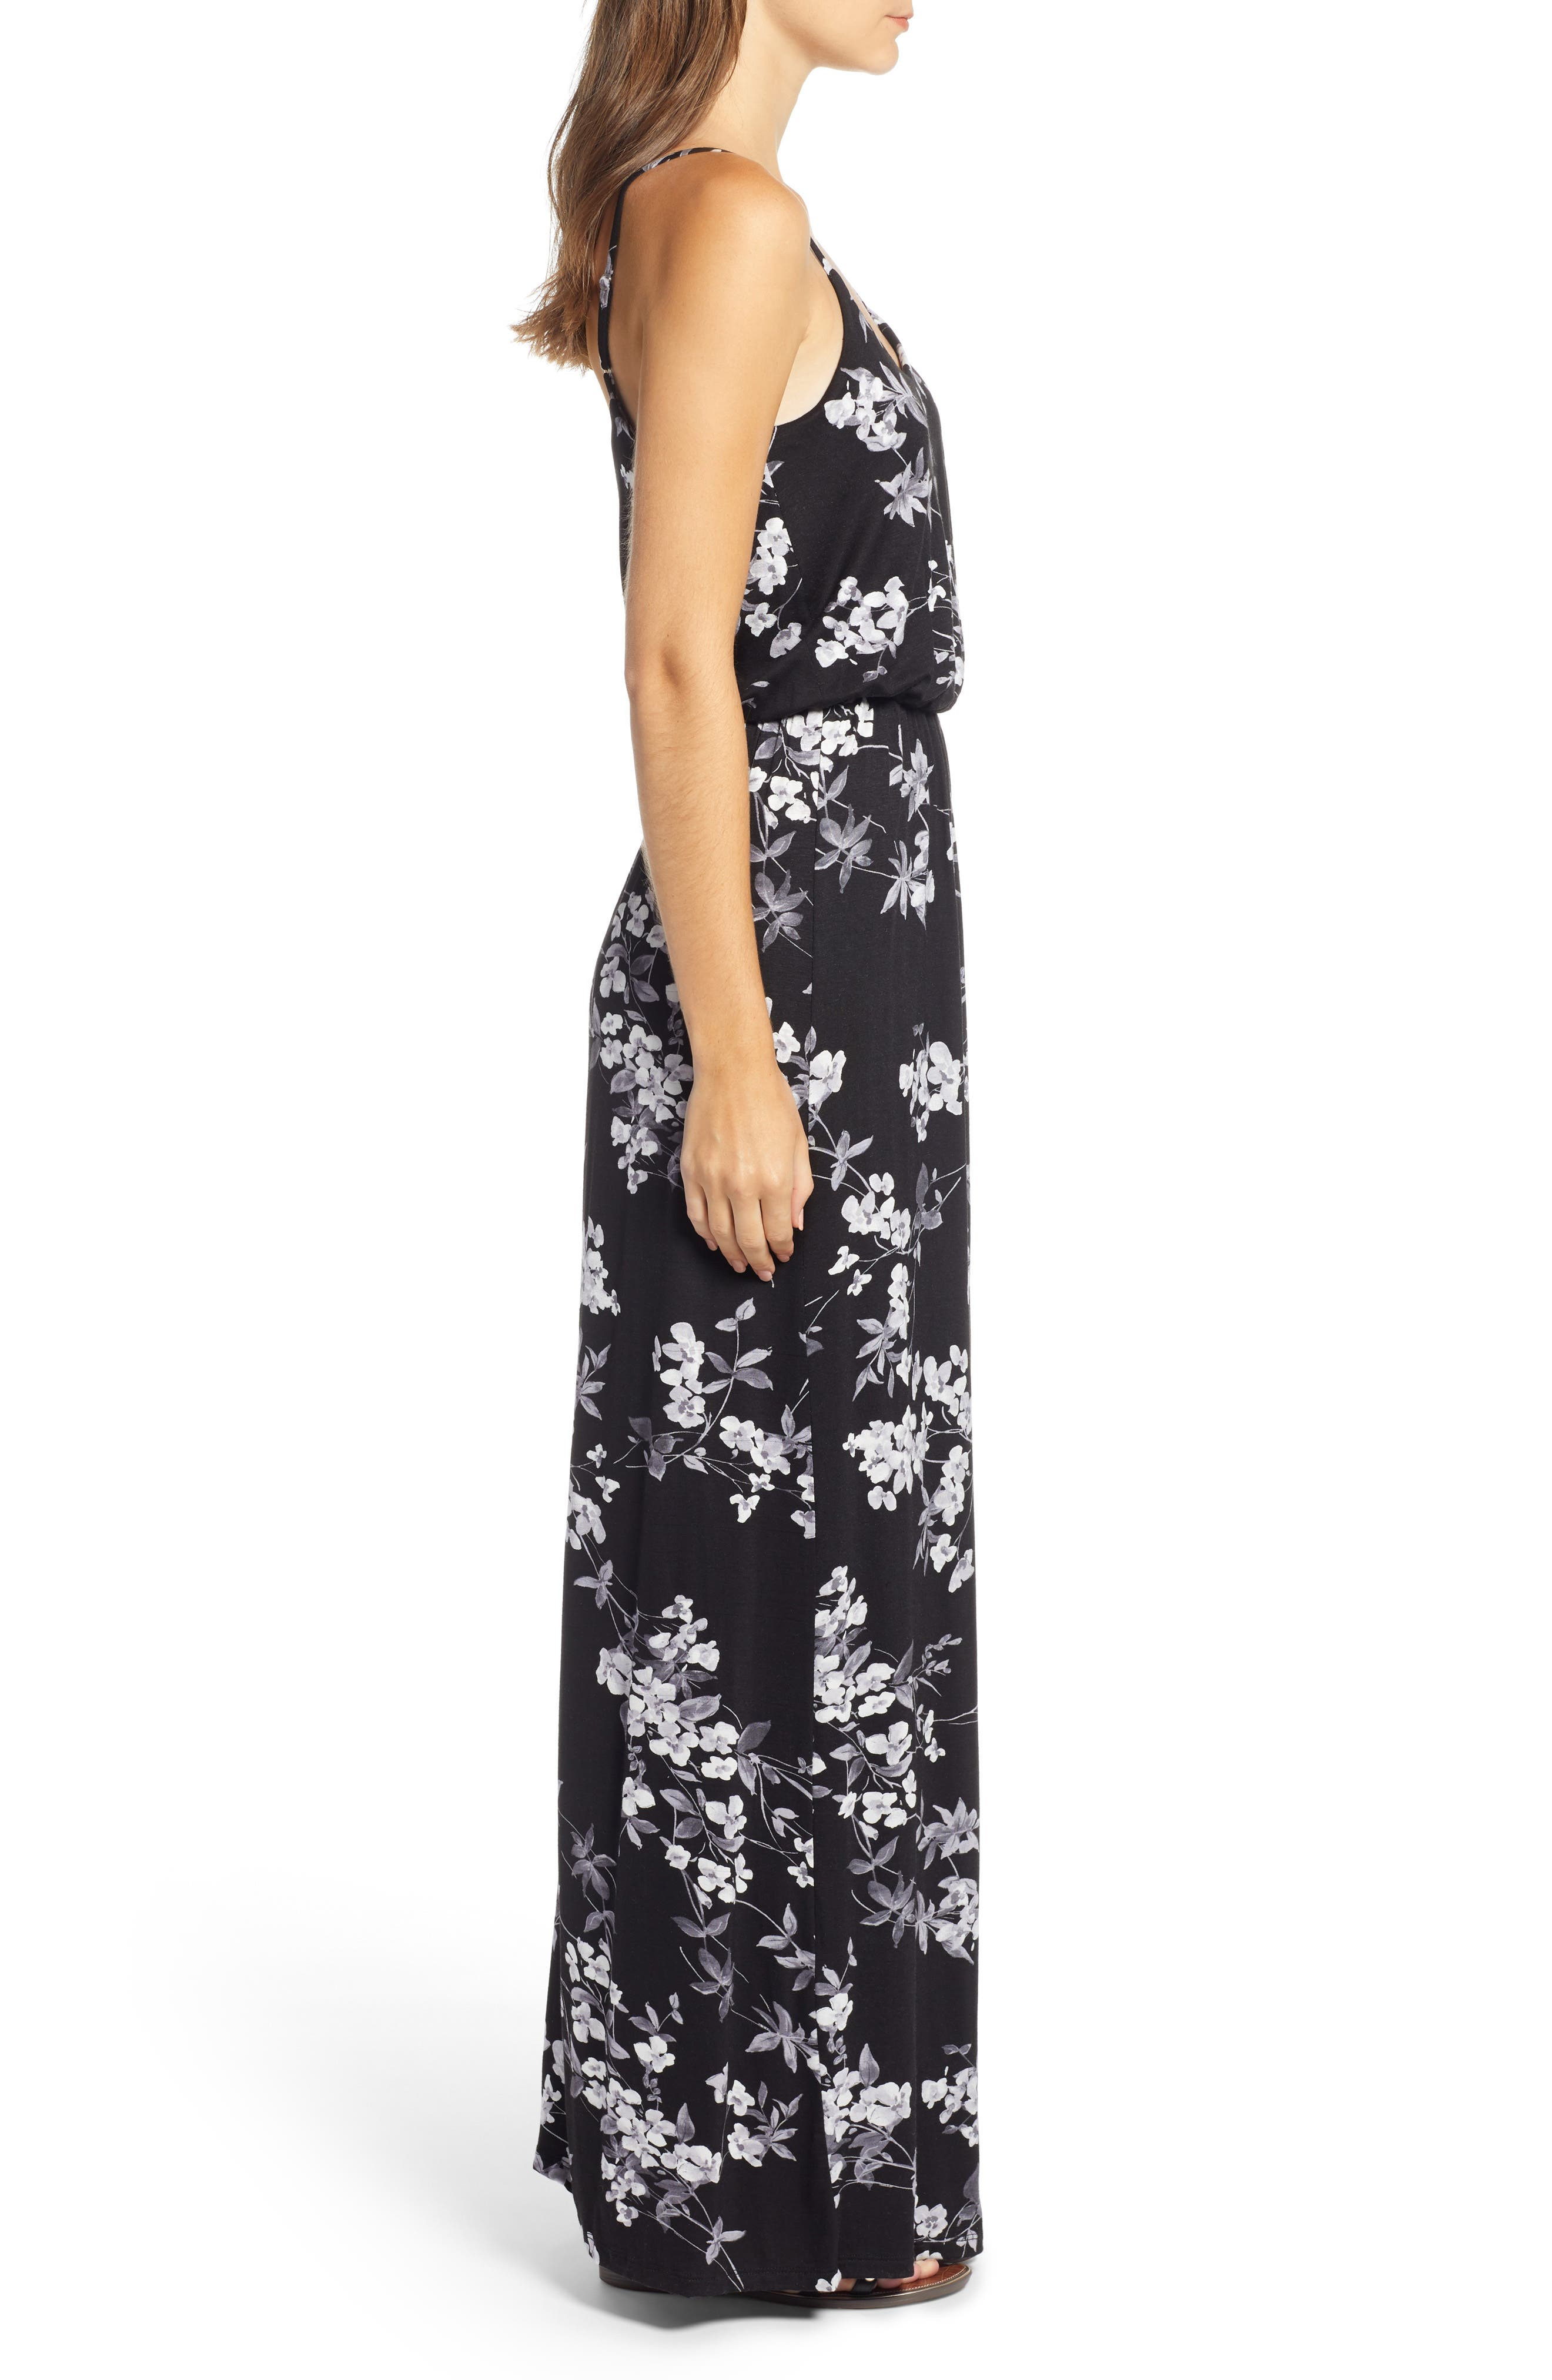 Knit Maxi Dress,                             Alternate thumbnail 3, color,                             BLACK/ CHARCOAL FLORAL